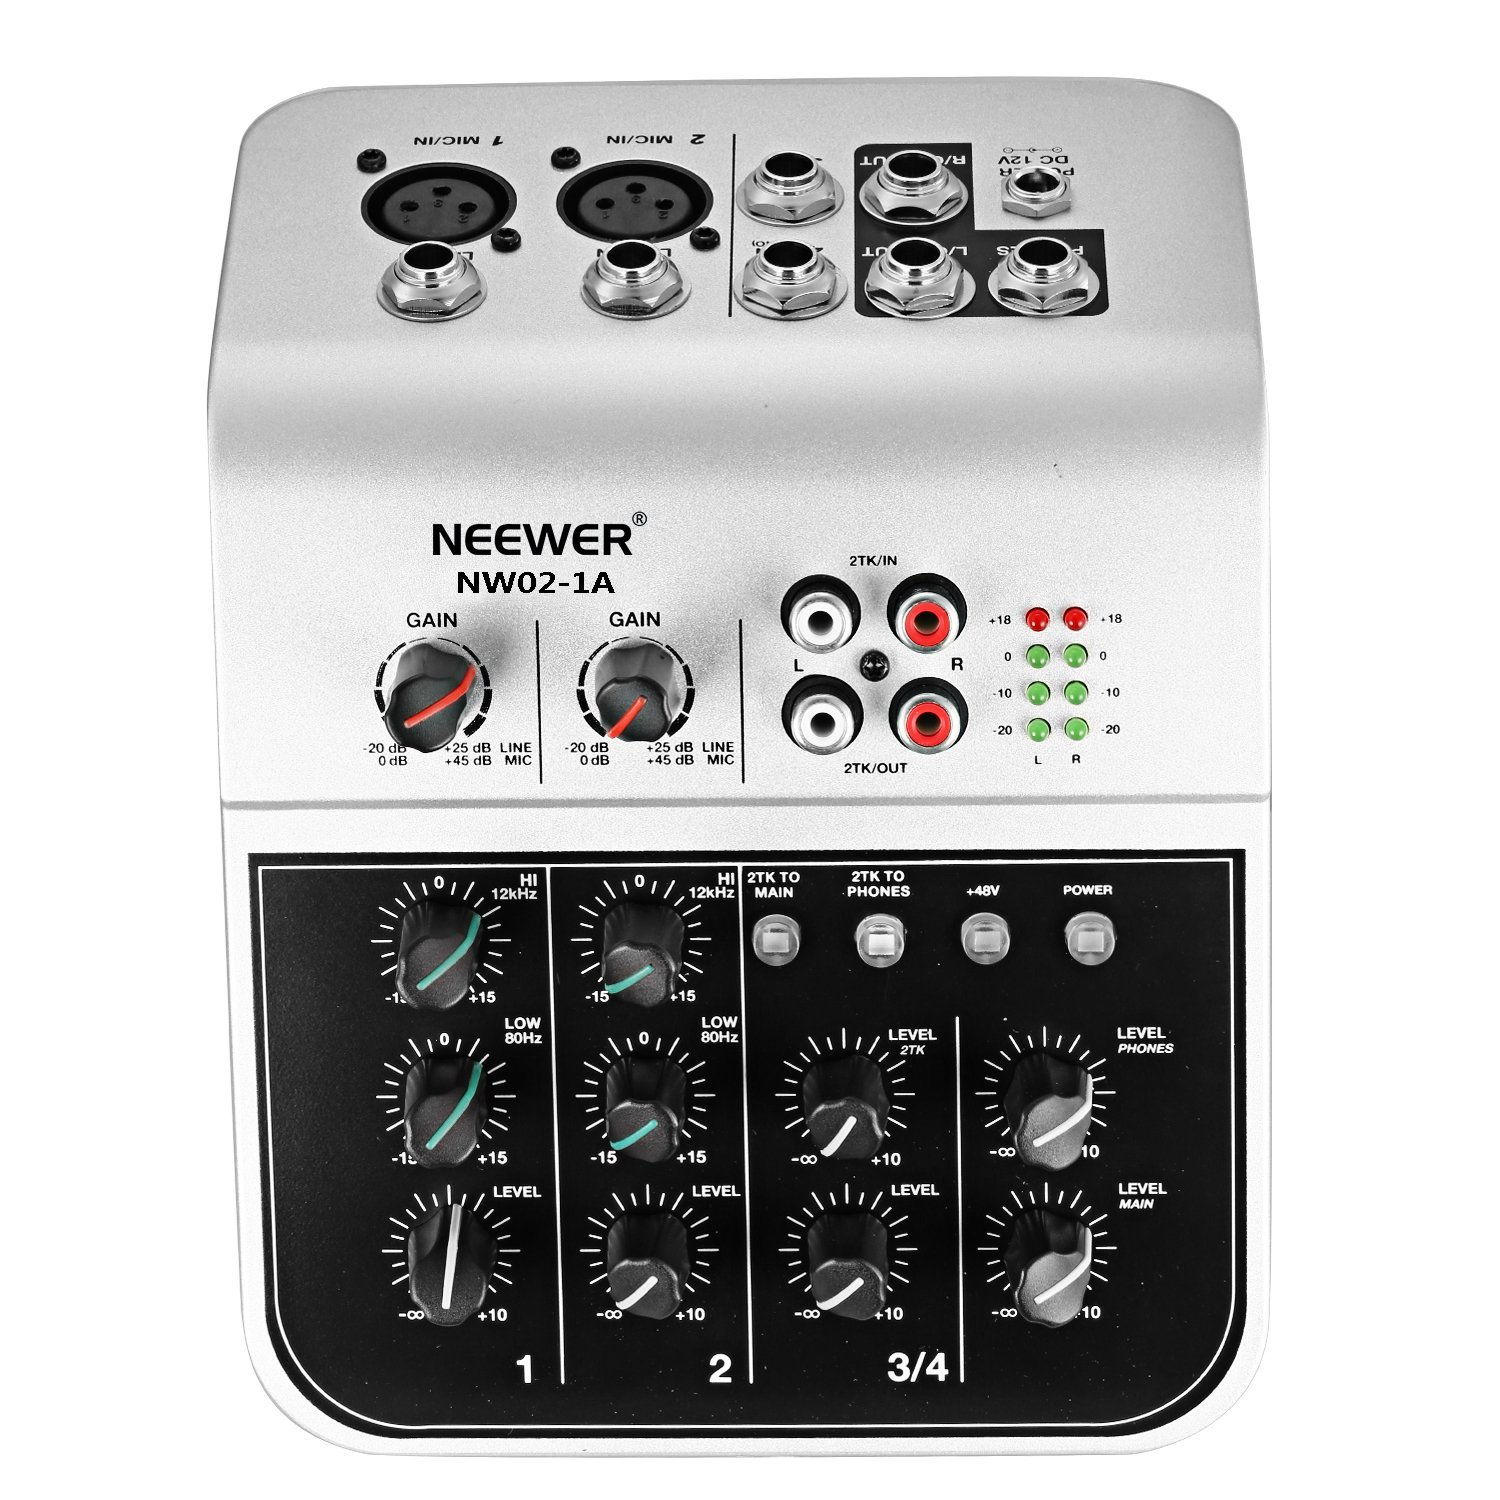 Neewer Mixing Console Compact Audio Sound 4-Channel Mixer for Condenser Microphone, with 48V Phantom Power 2 Band EQ 2-way Stereo Line Input RCA Input/Output 4 Band LED Level Indicator (NW02-1A) by Neewer